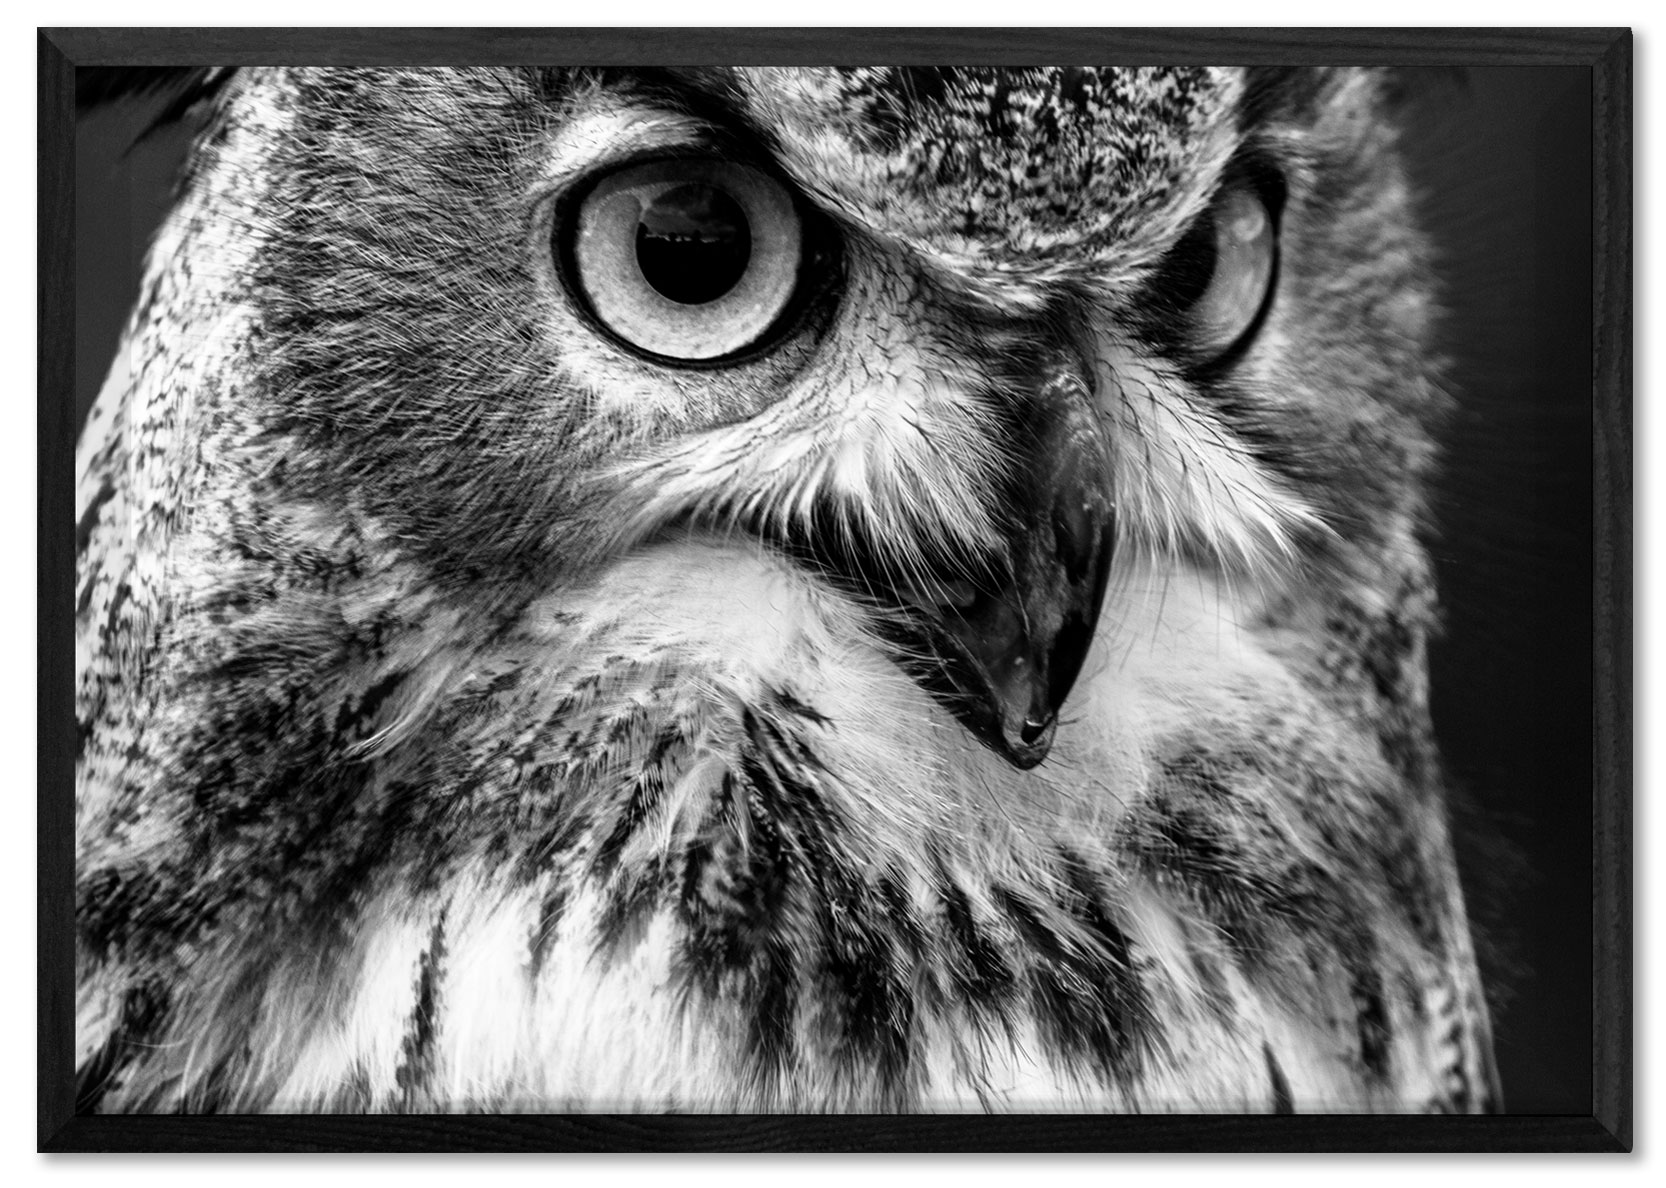 Owl close up black and white poster